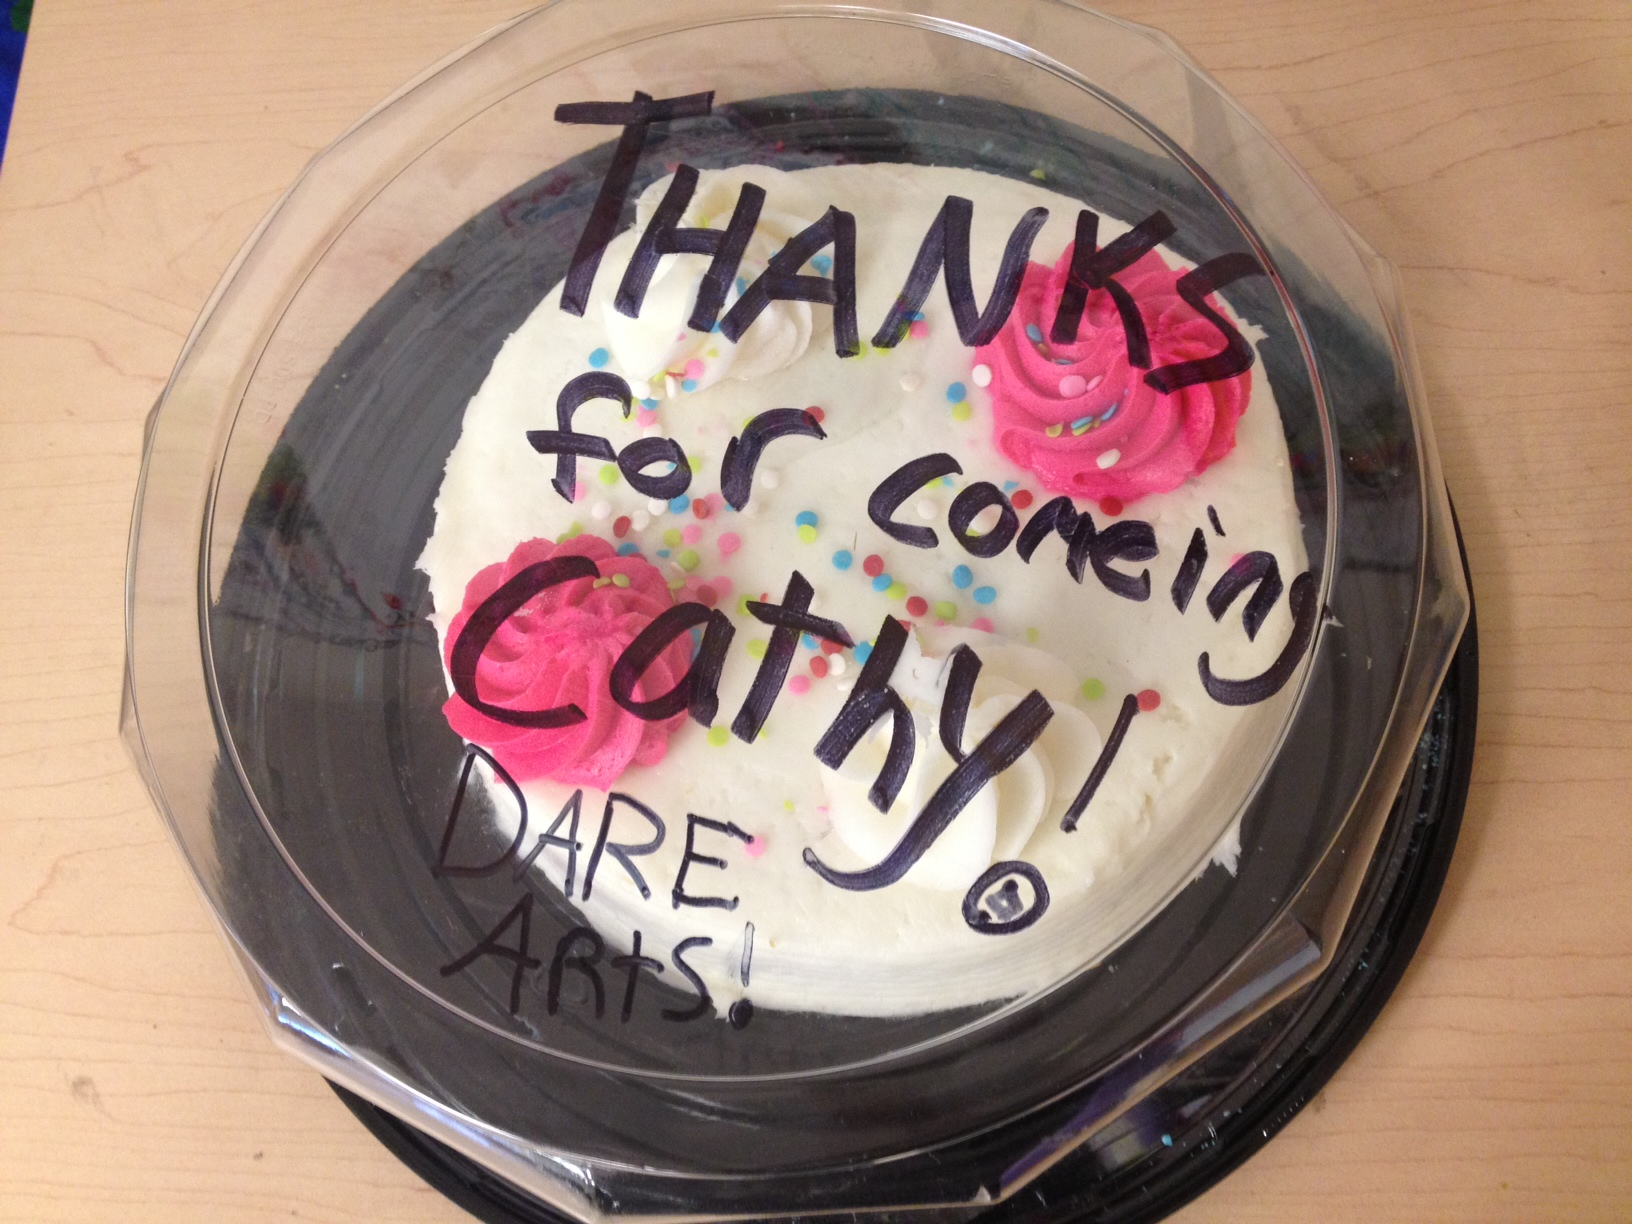 Cathy takes the cake